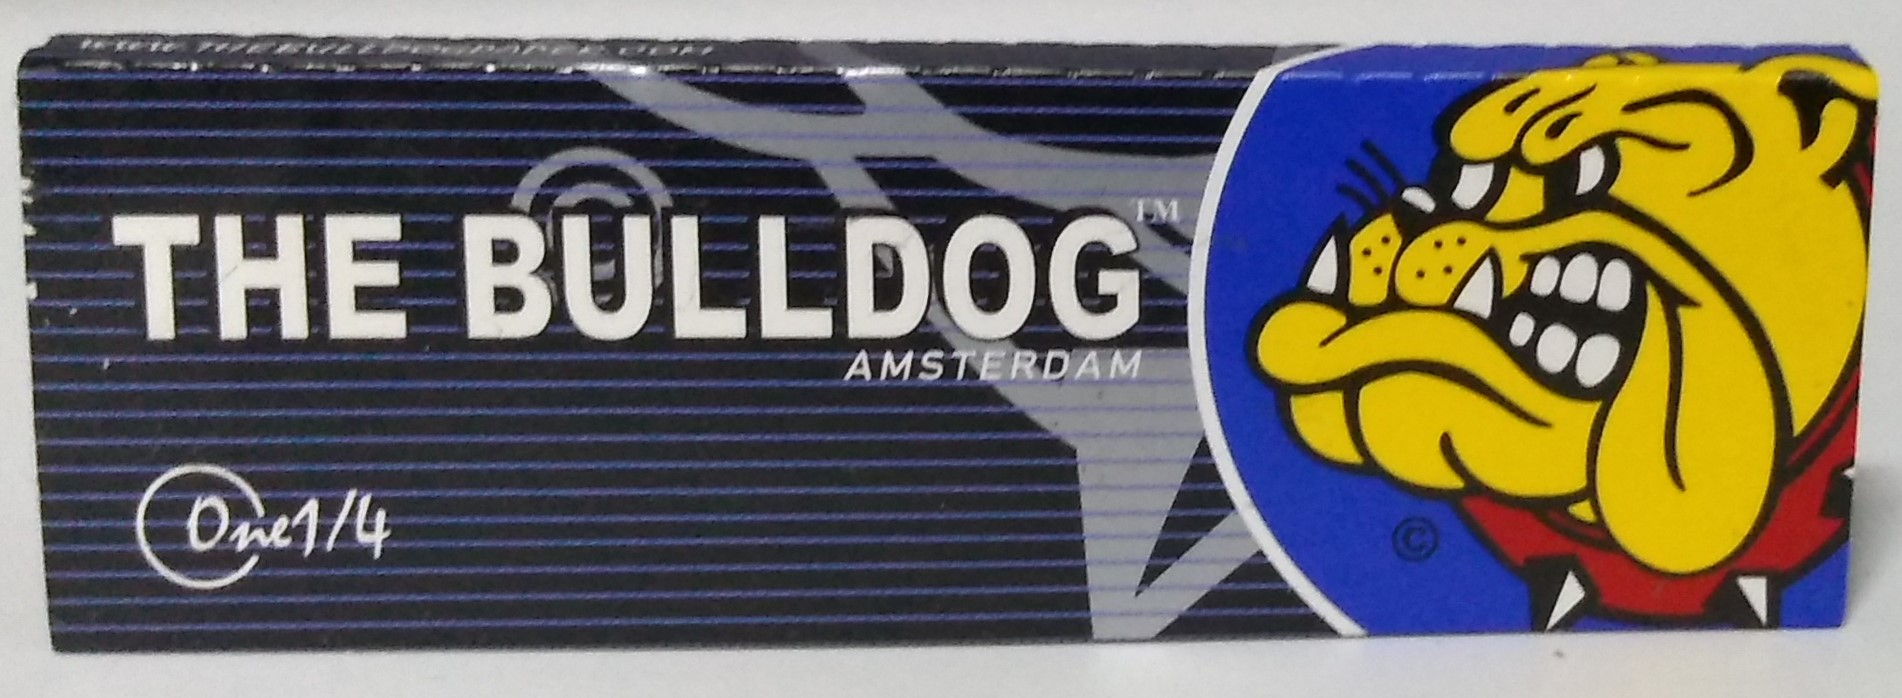 Papel The Bulldog Black 1.1/4